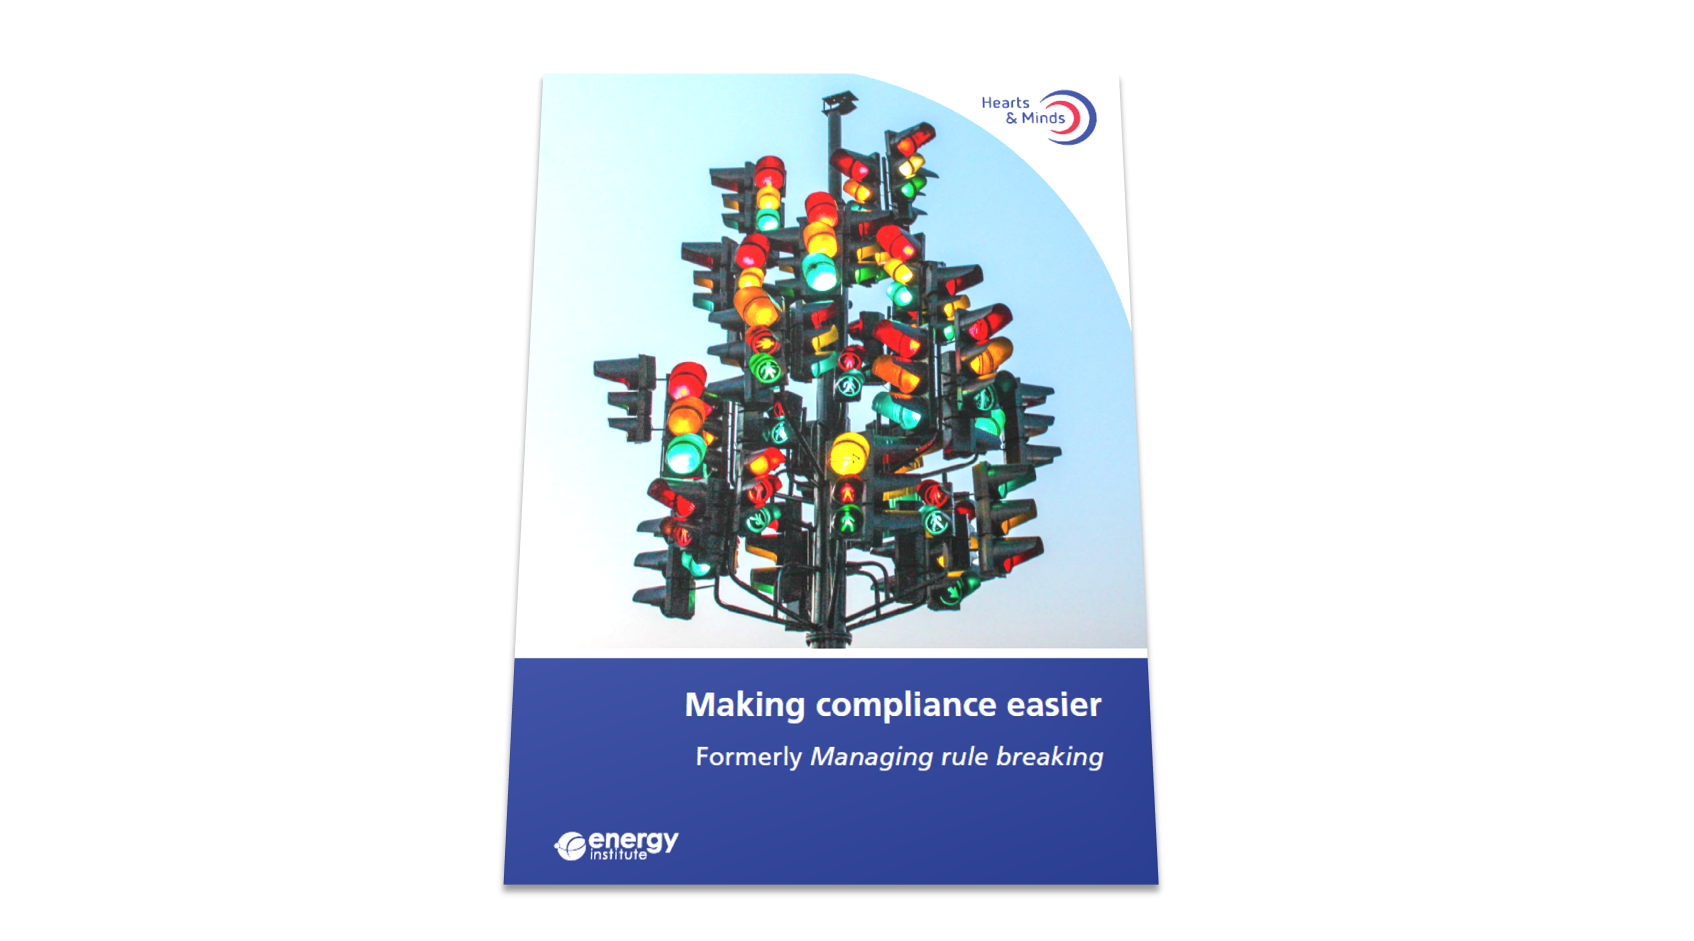 Making compliance easier